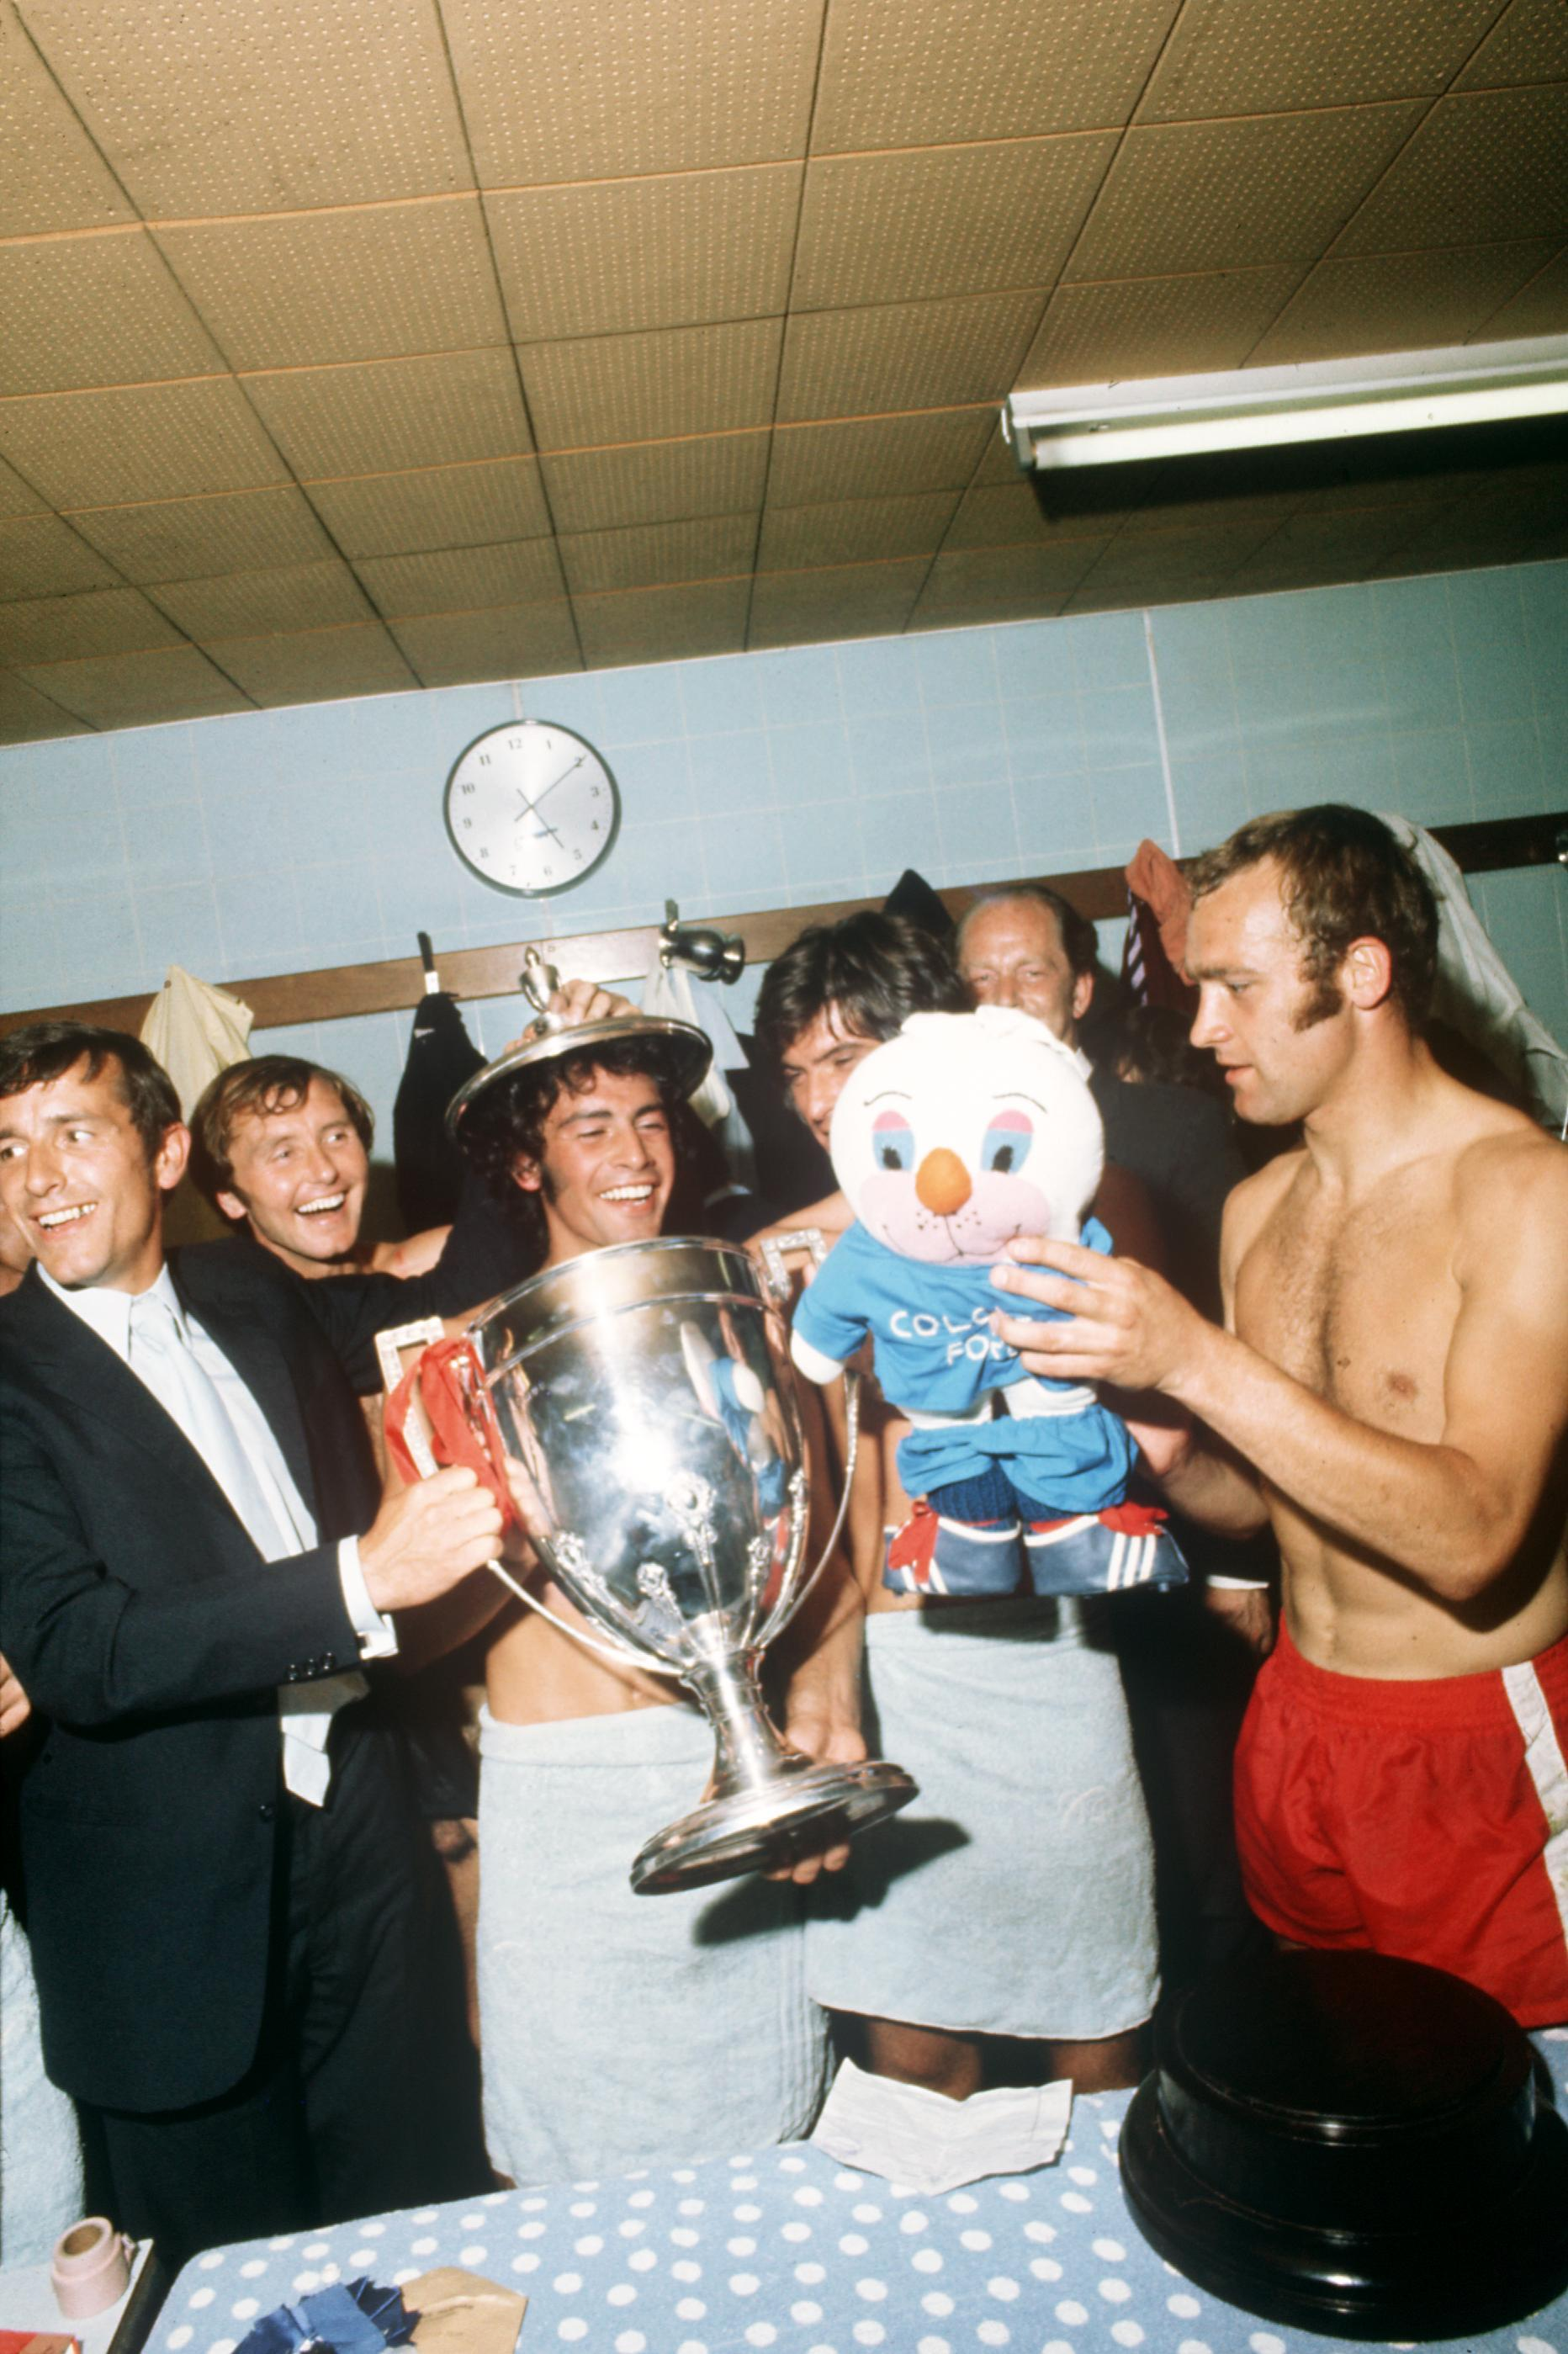 Inside Soccer Changing Rooms The 1970s Bathtime With The Winners